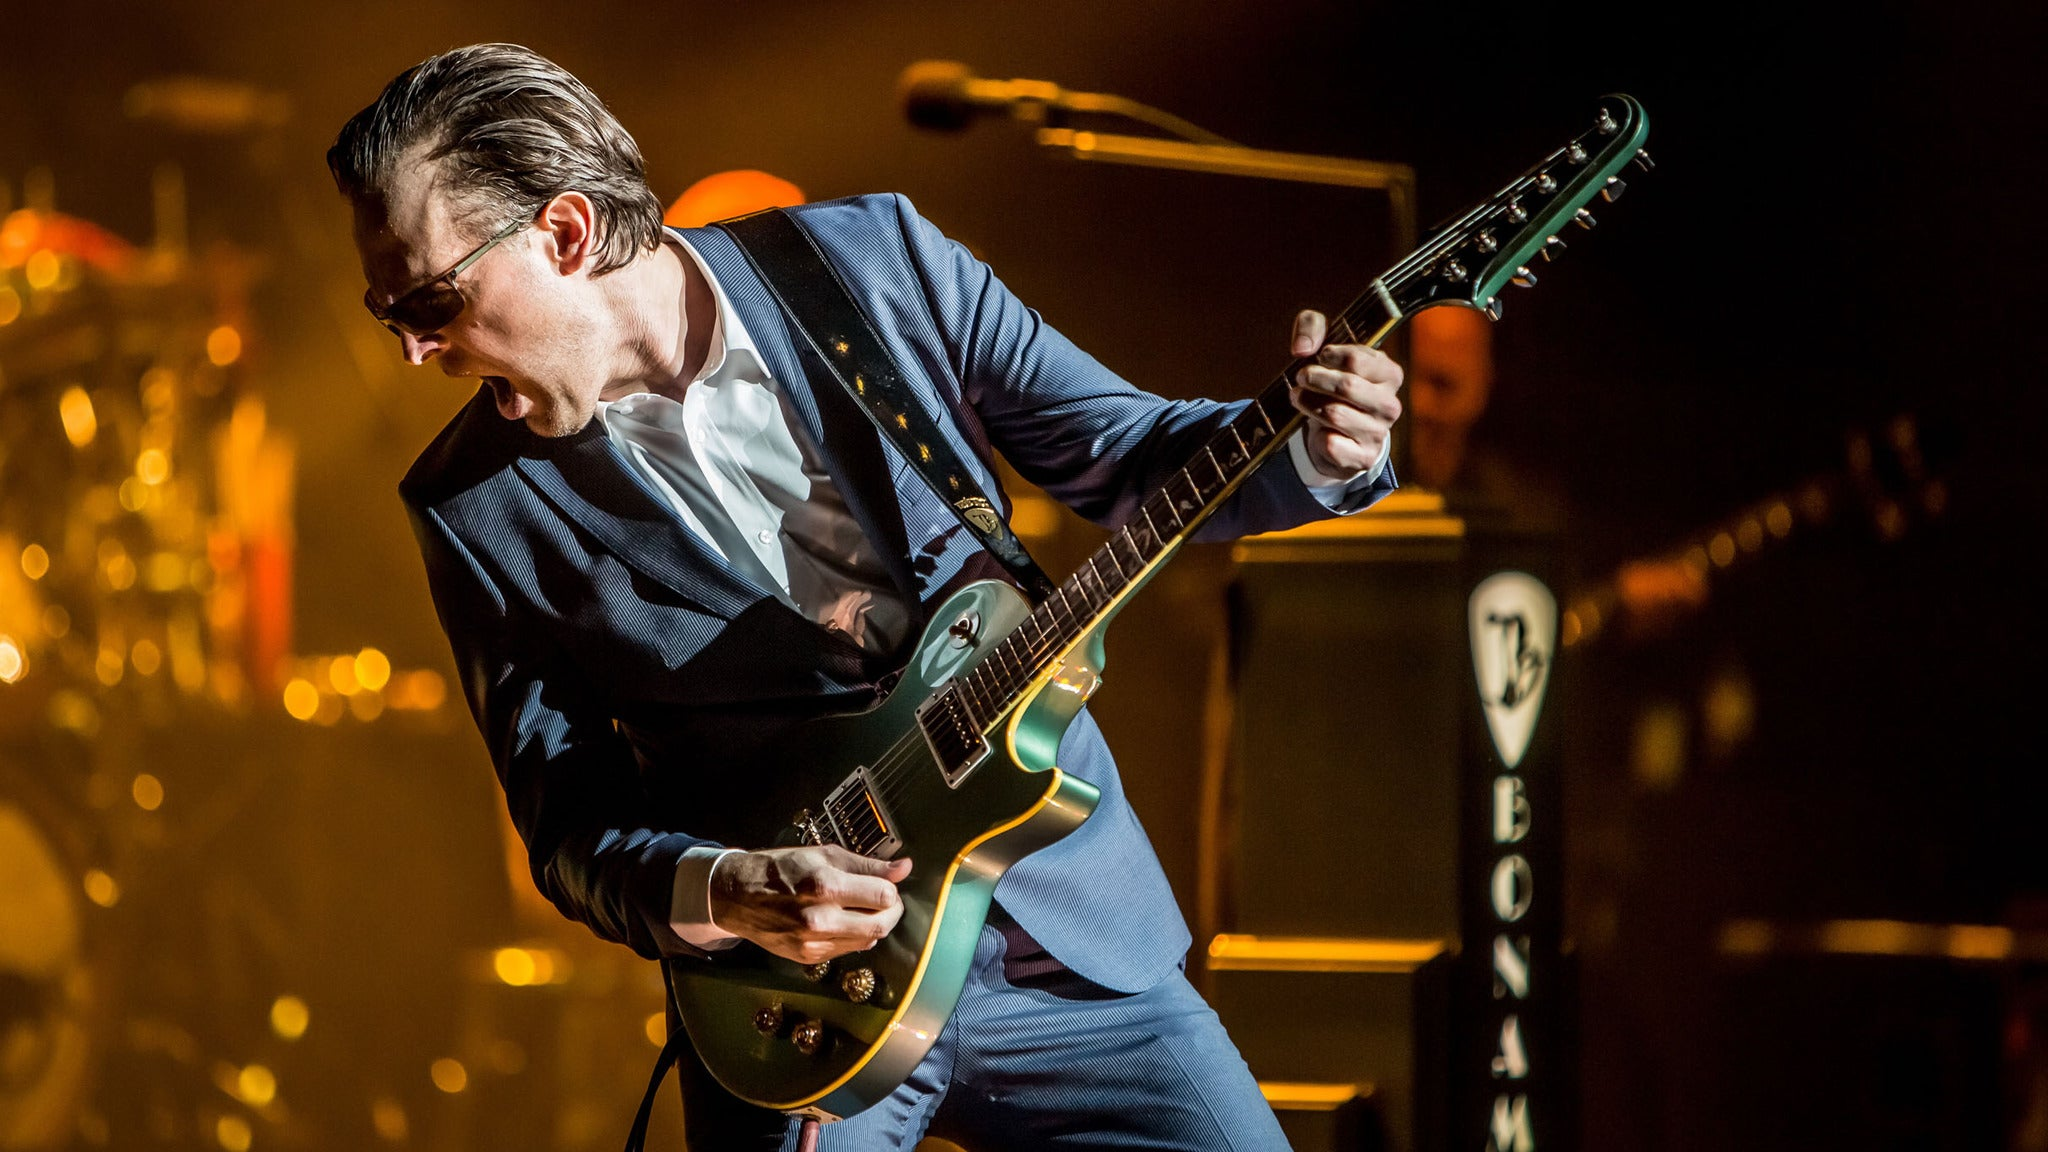 Joe Bonamassa at Balboa Theatre